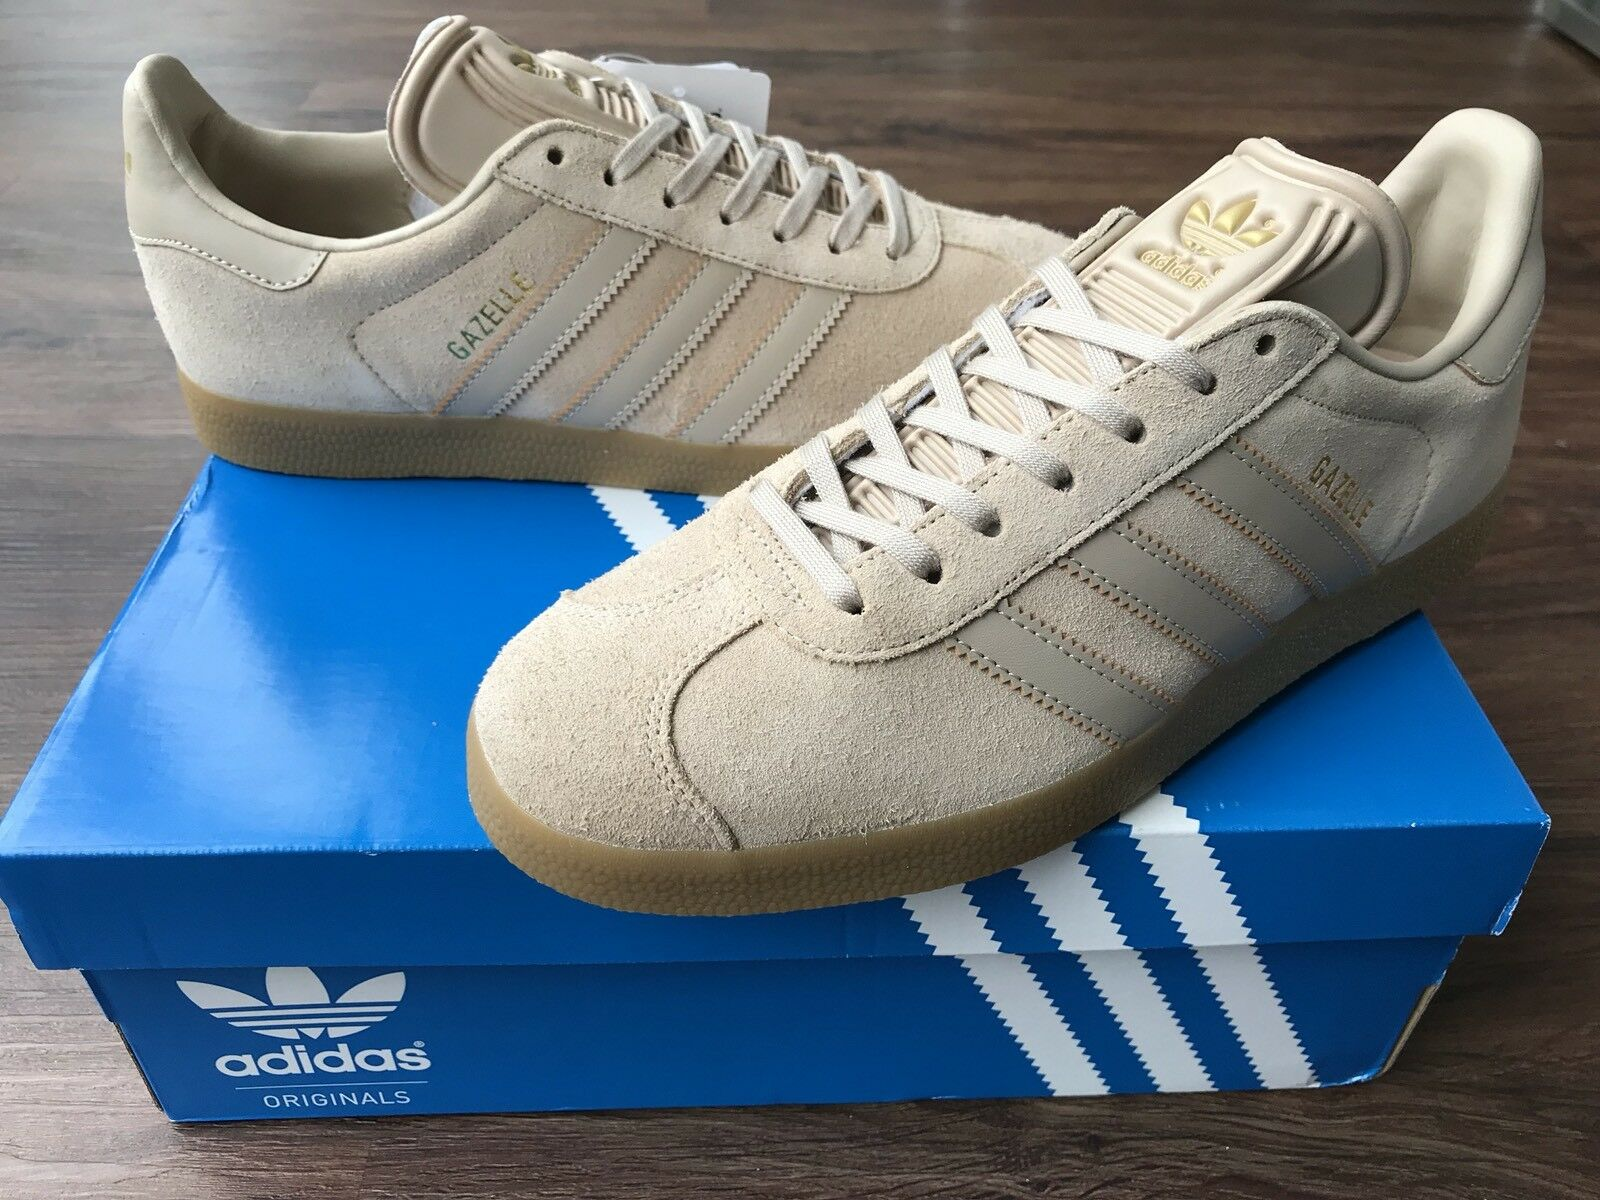 ADIDAS Gazelle Mens Trainers, Brown - Comfortable New shoes for men and women, limited time discount